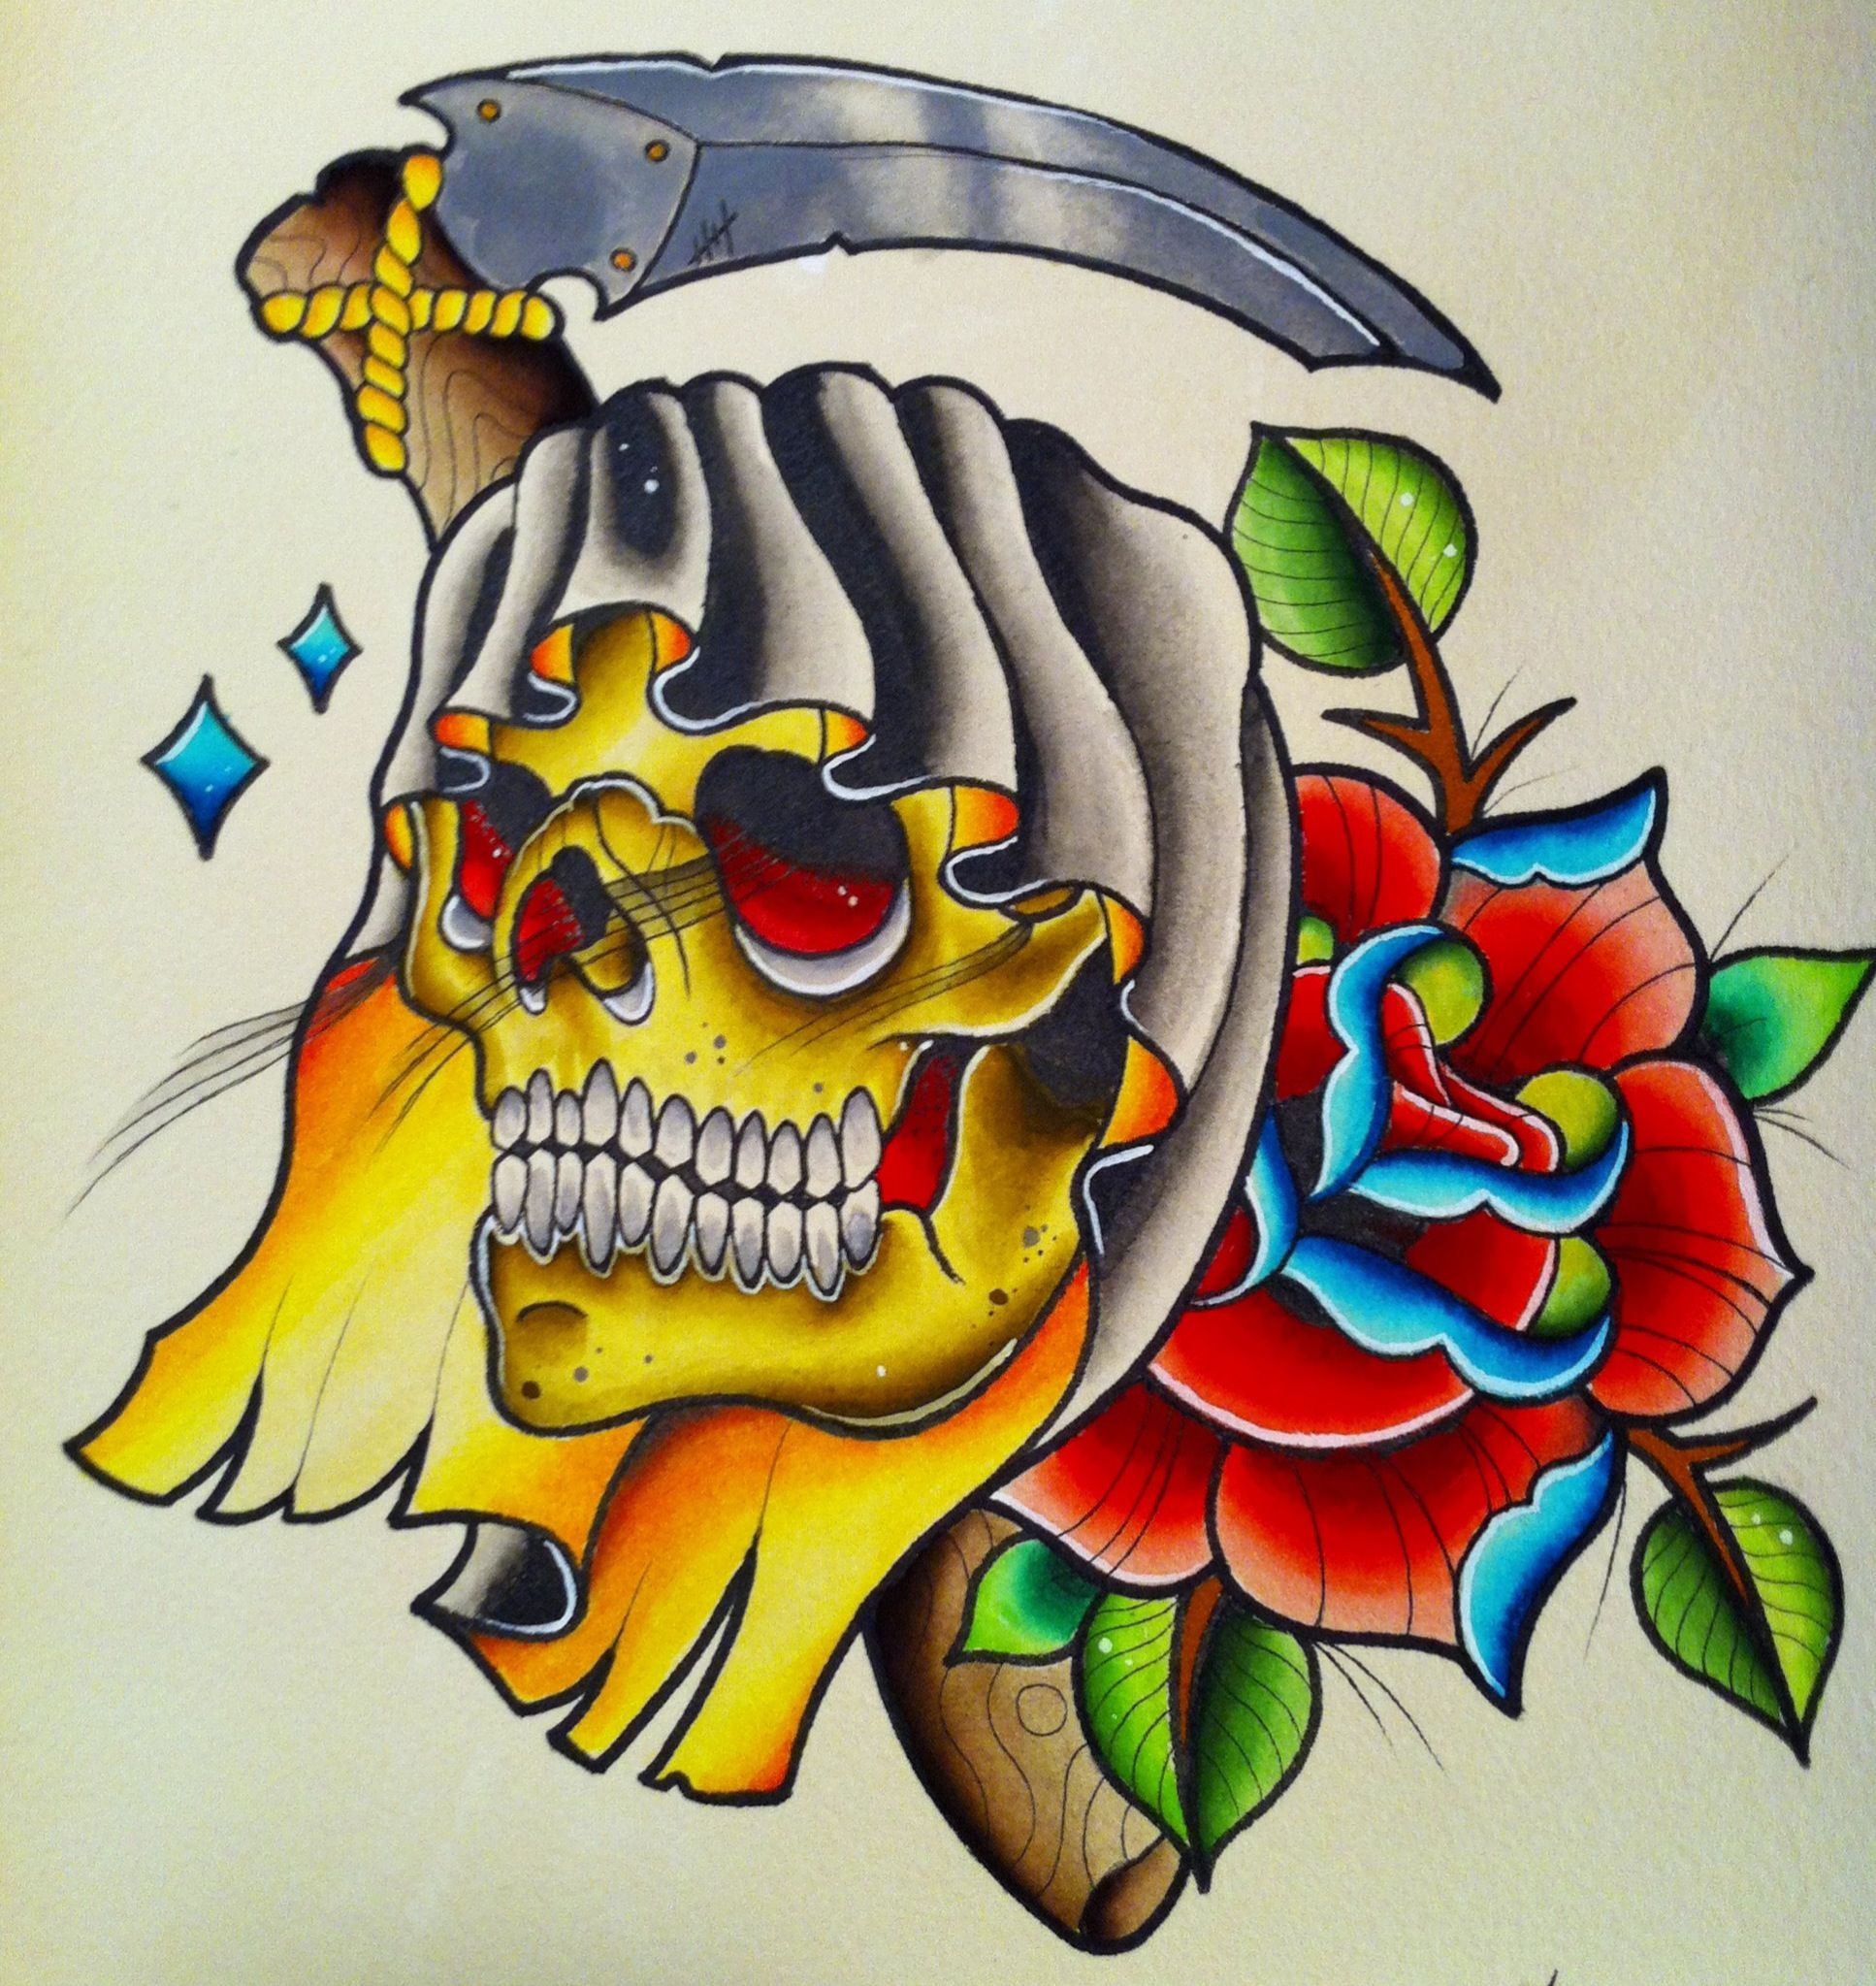 Grim Reaper Tattoo Nordic Tattoo: Grim Reaper Tattoo Flash. If You Like My Work Follow Me On